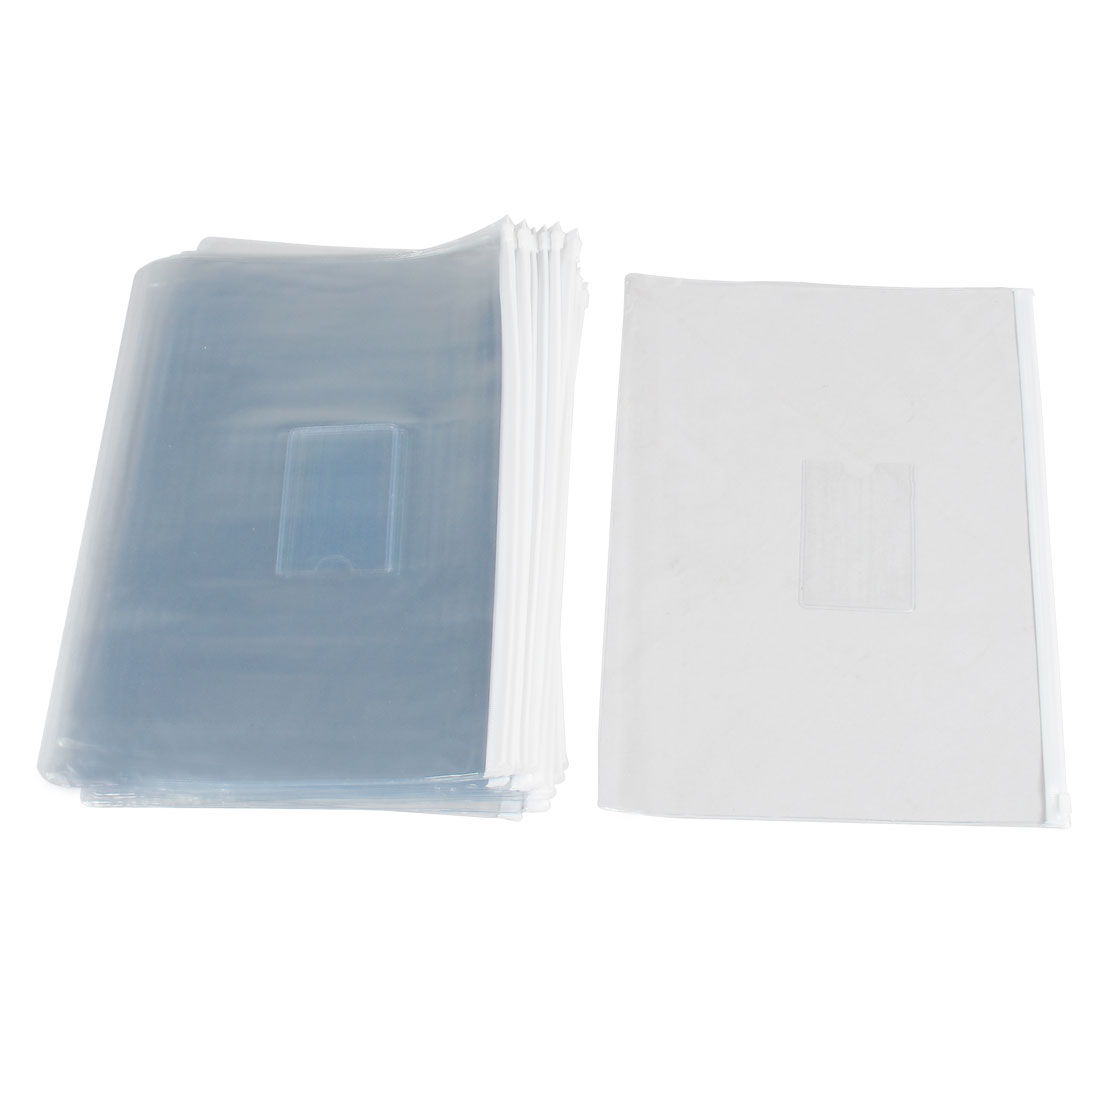 20pcs White Clear Plastic Slider Zip Lock Bags Files Holder for A4 Paper